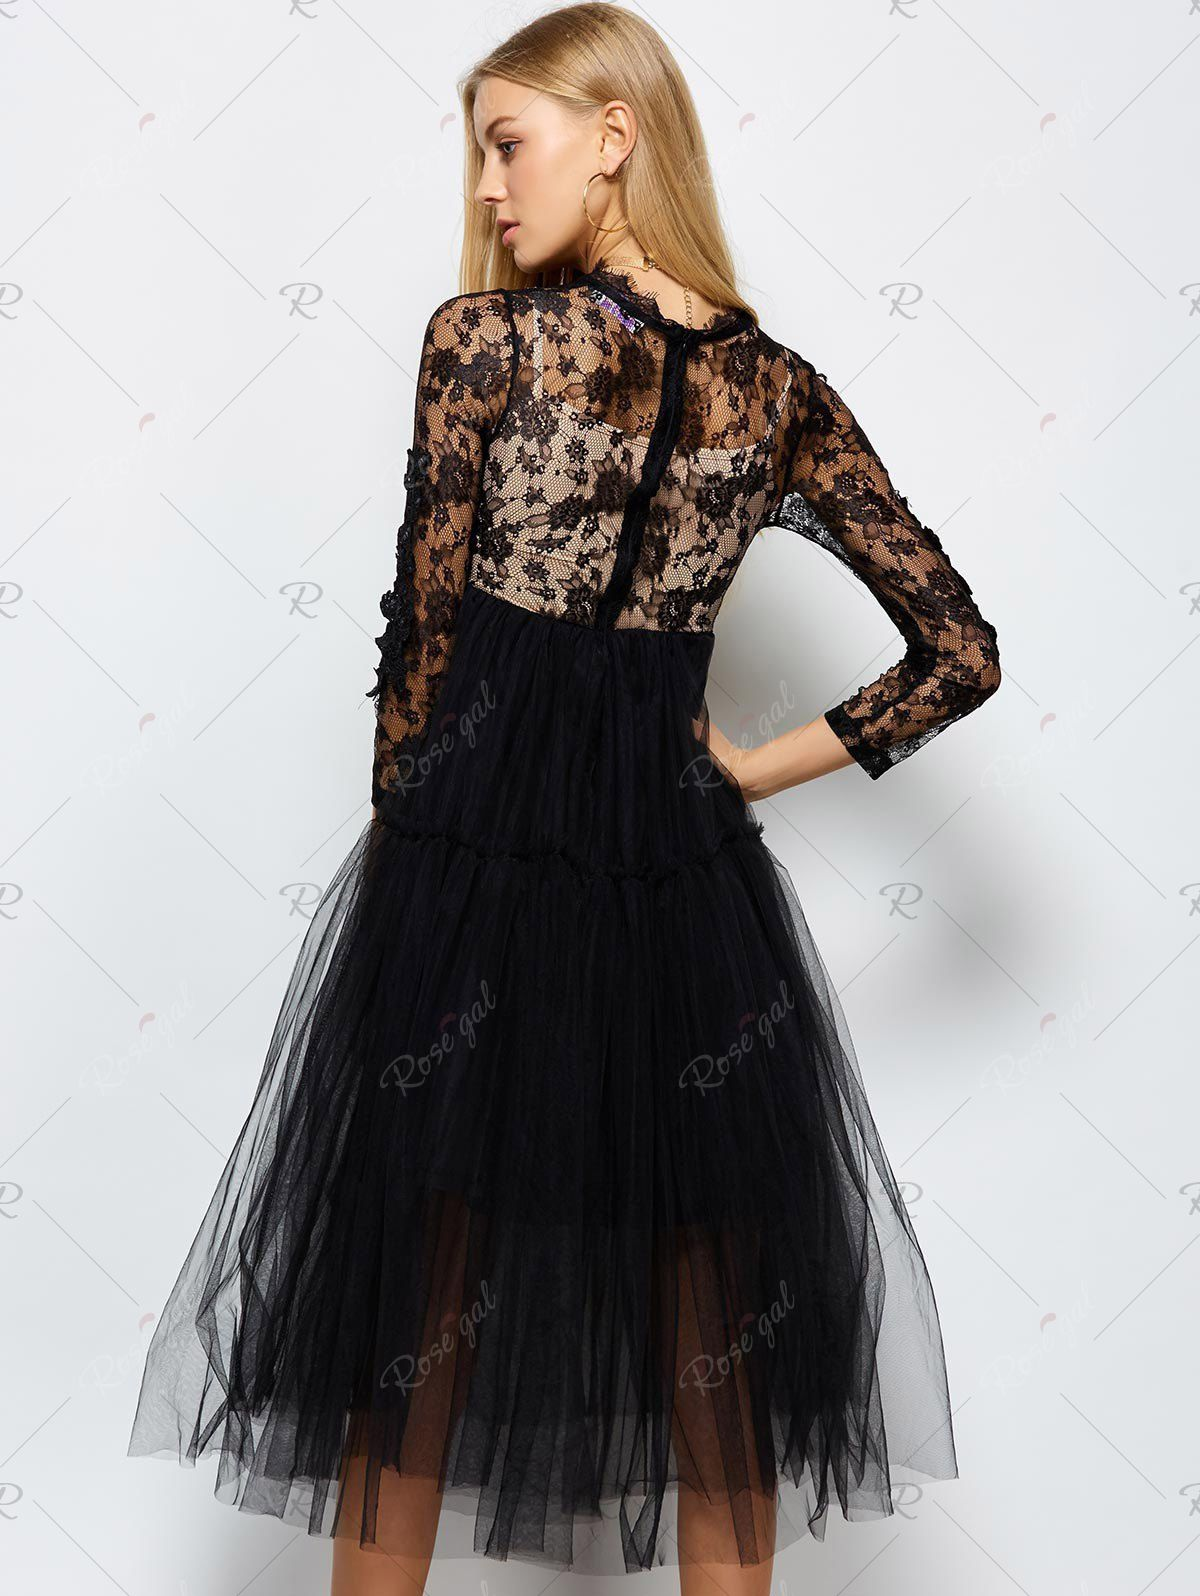 Best Shoes for Lace Cocktail Dress